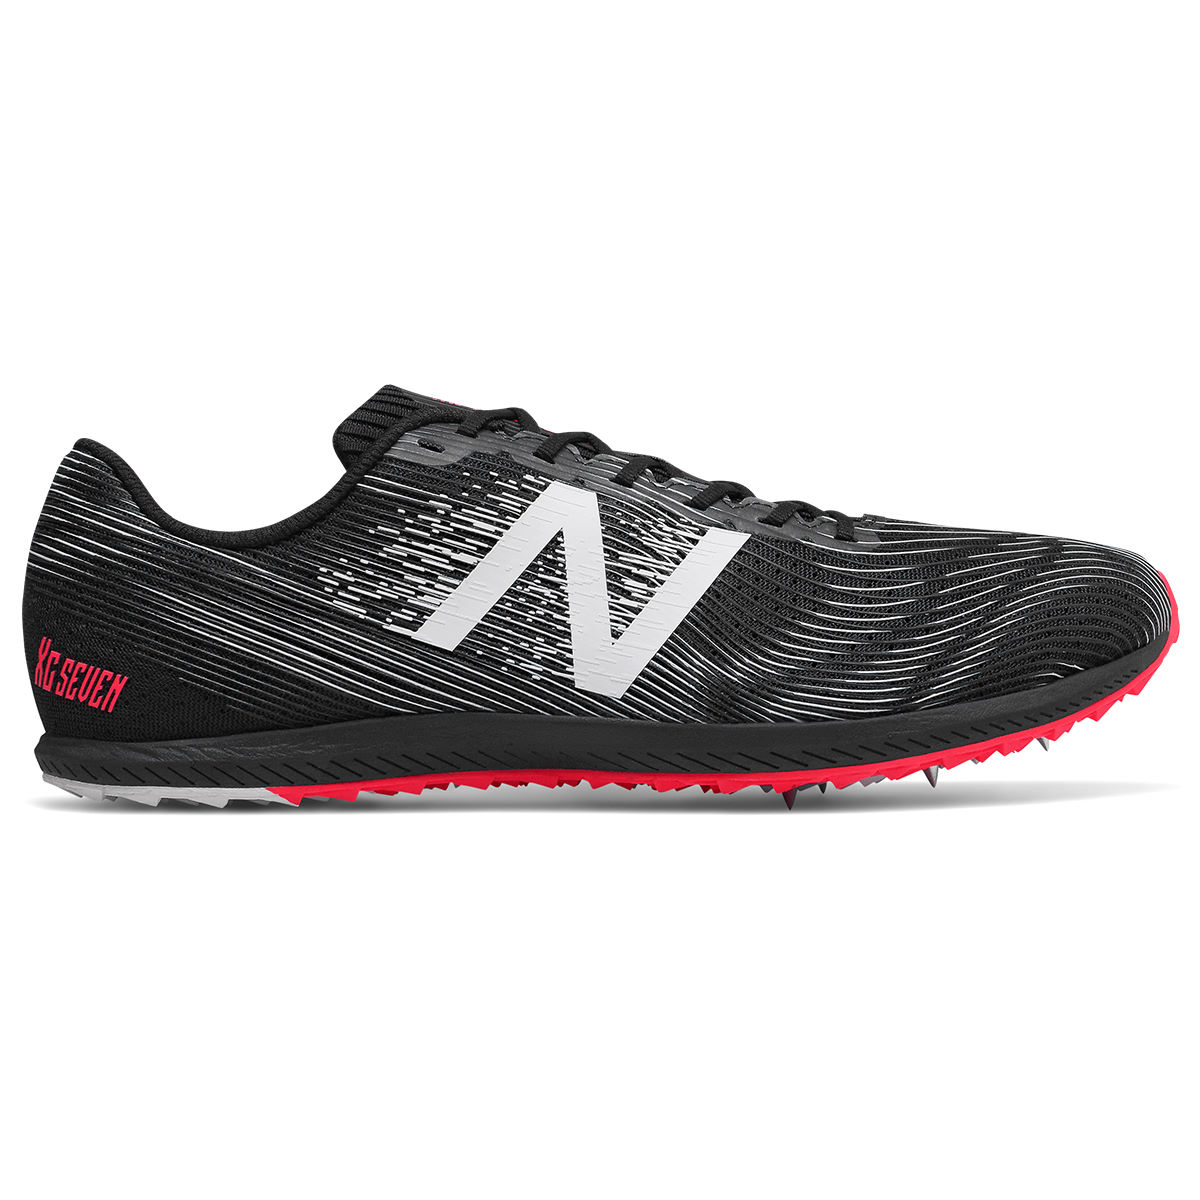 New Balance Cross Country Spike - Zapatillas de atletismo